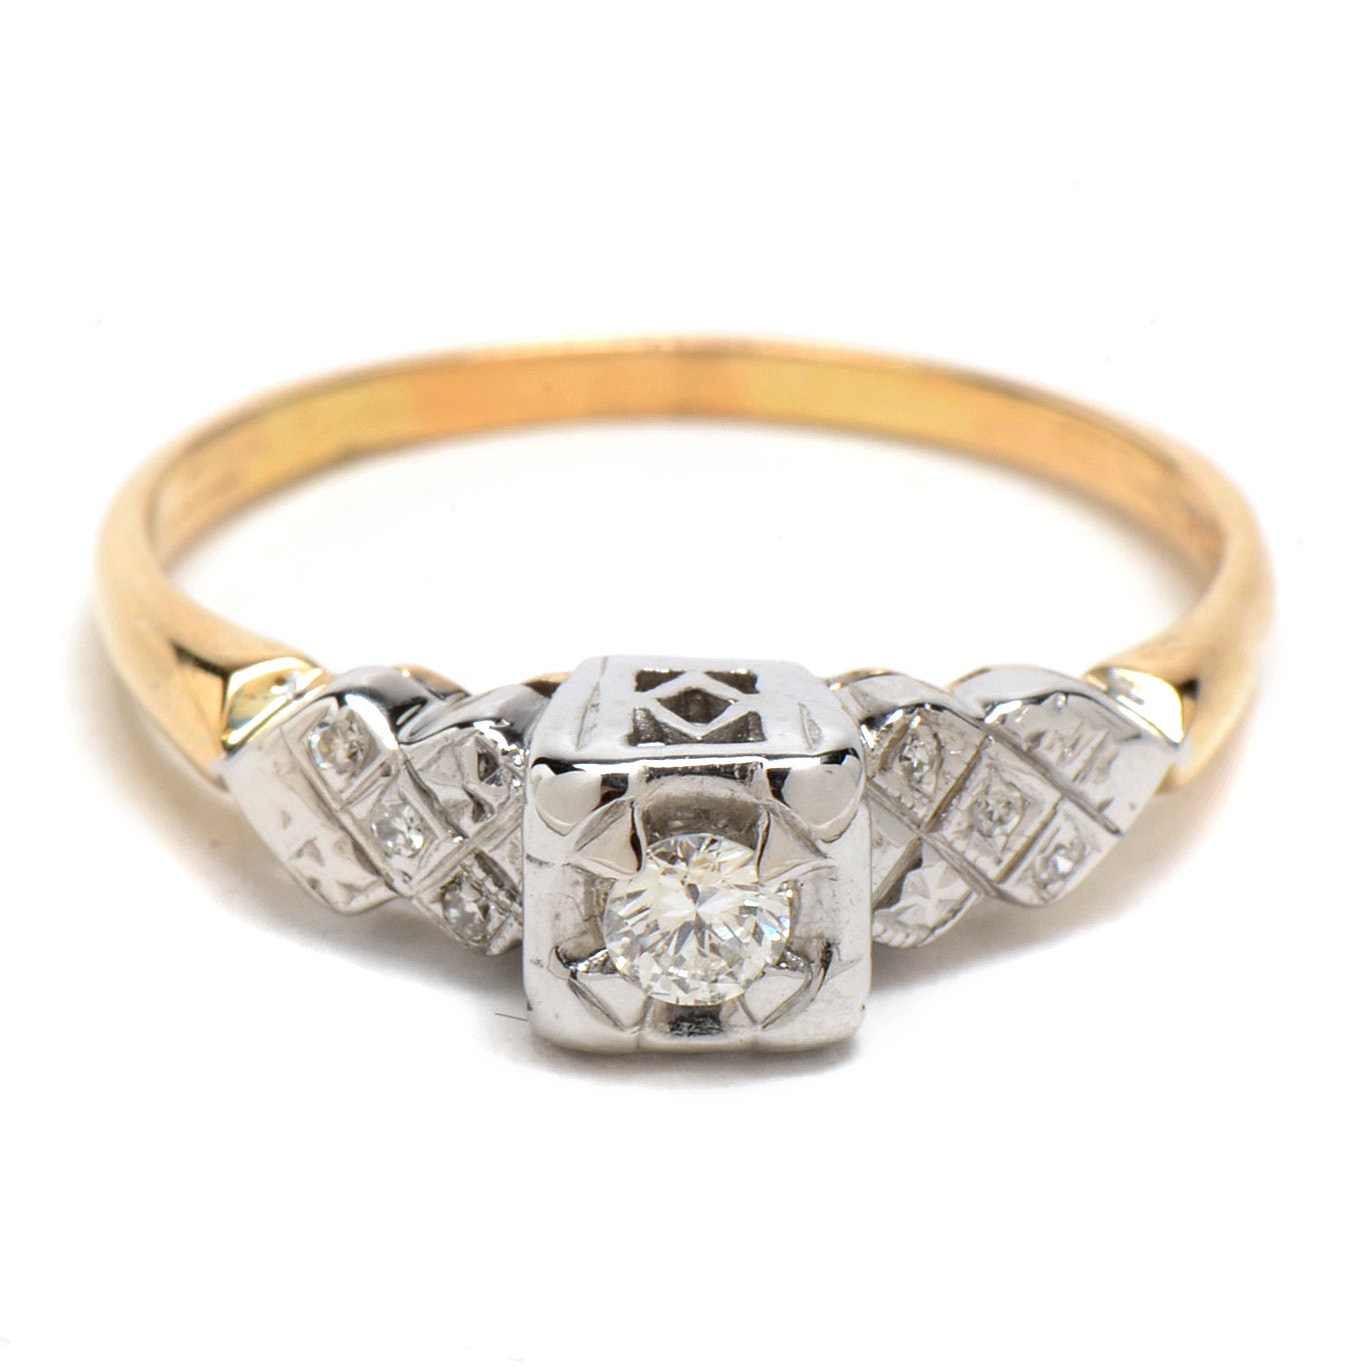 14K Two Tone Gold and Diamond Ring